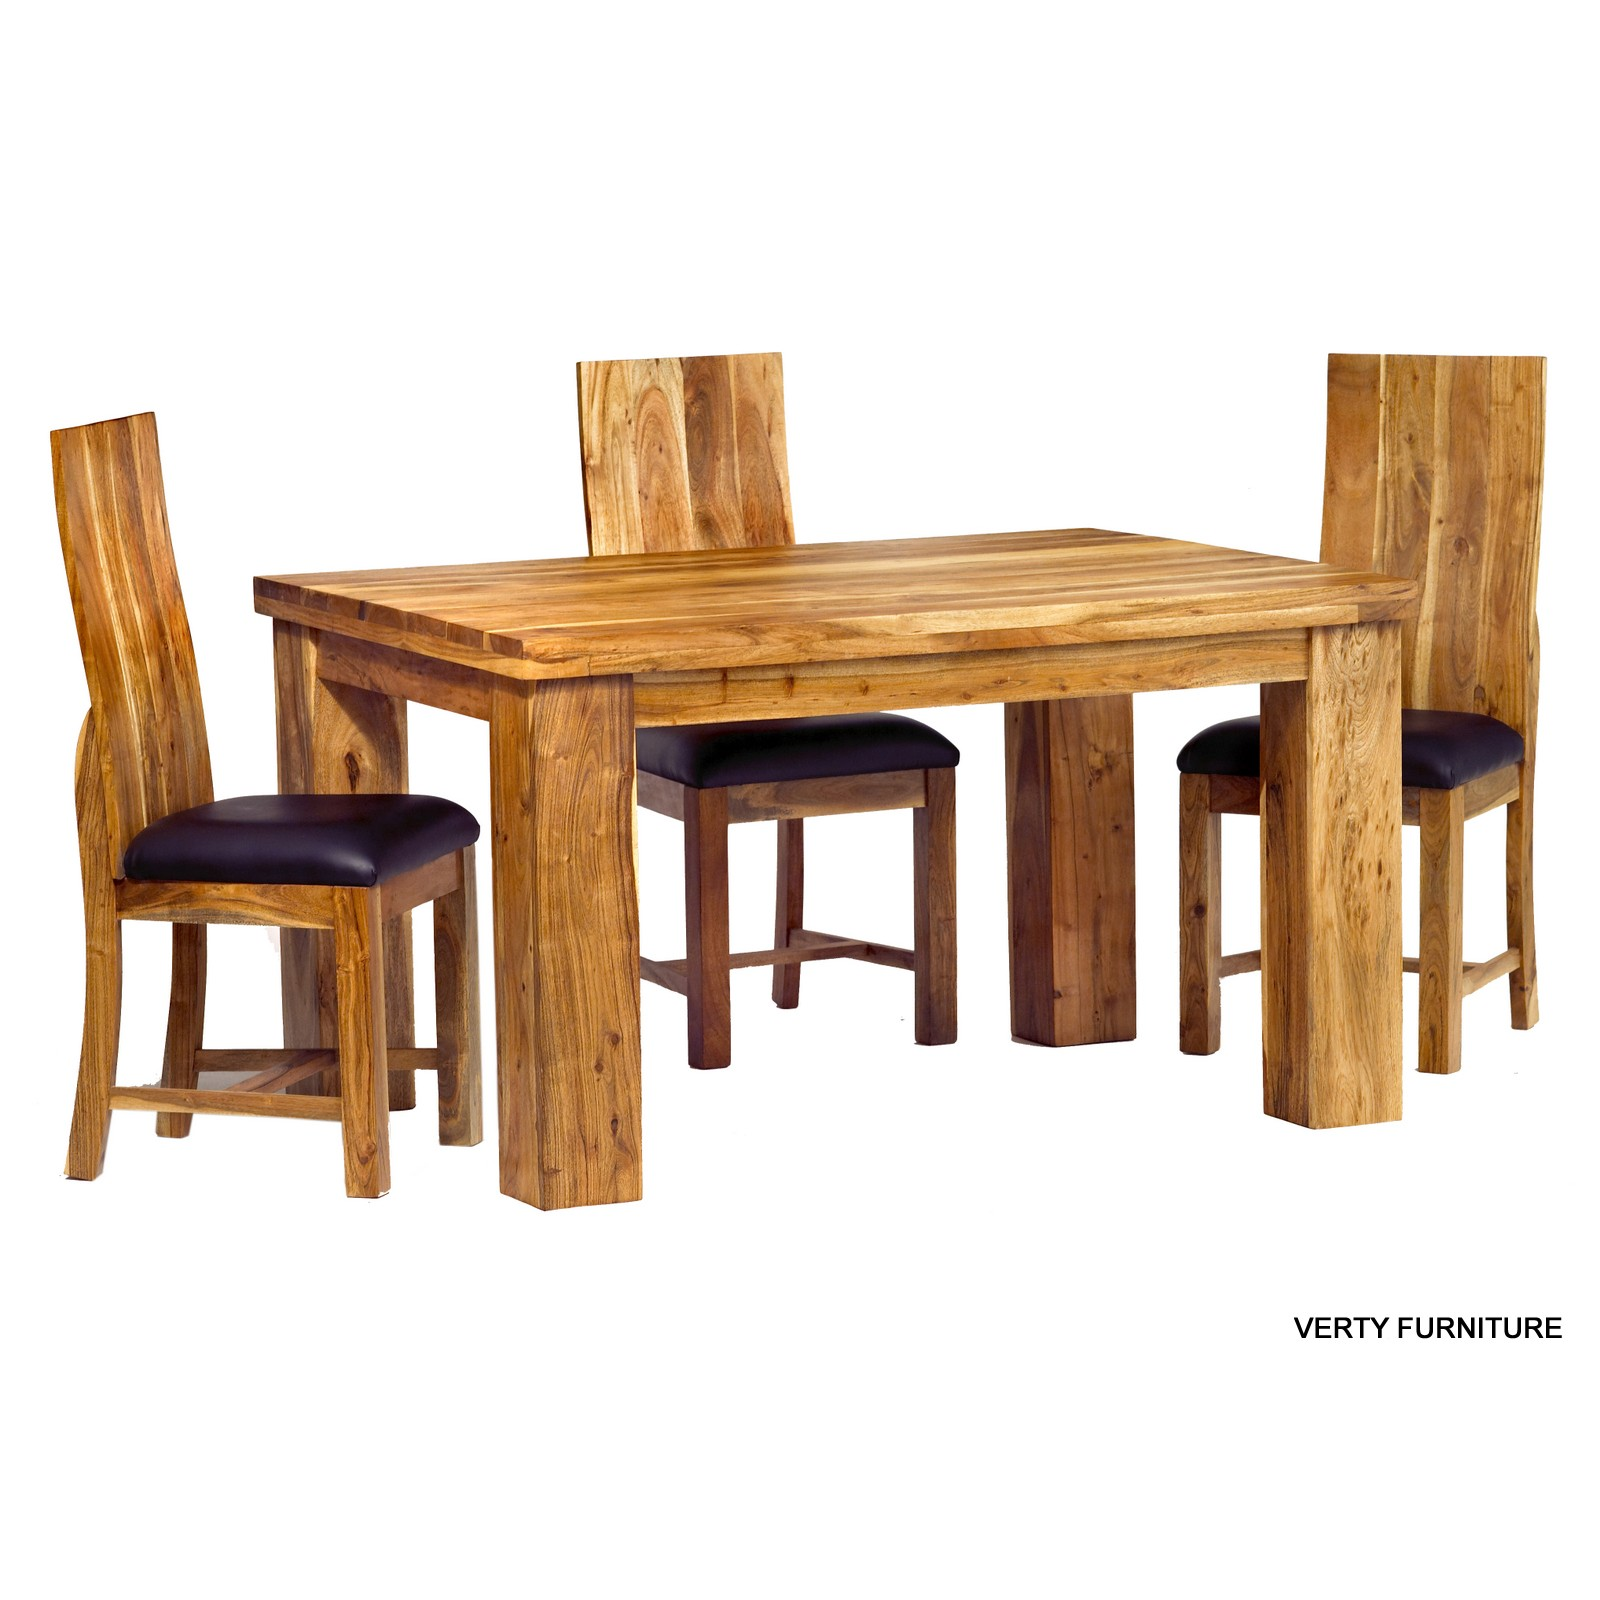 Acacia dining table small with 4 chairs verty indian for Small dining table with chairs